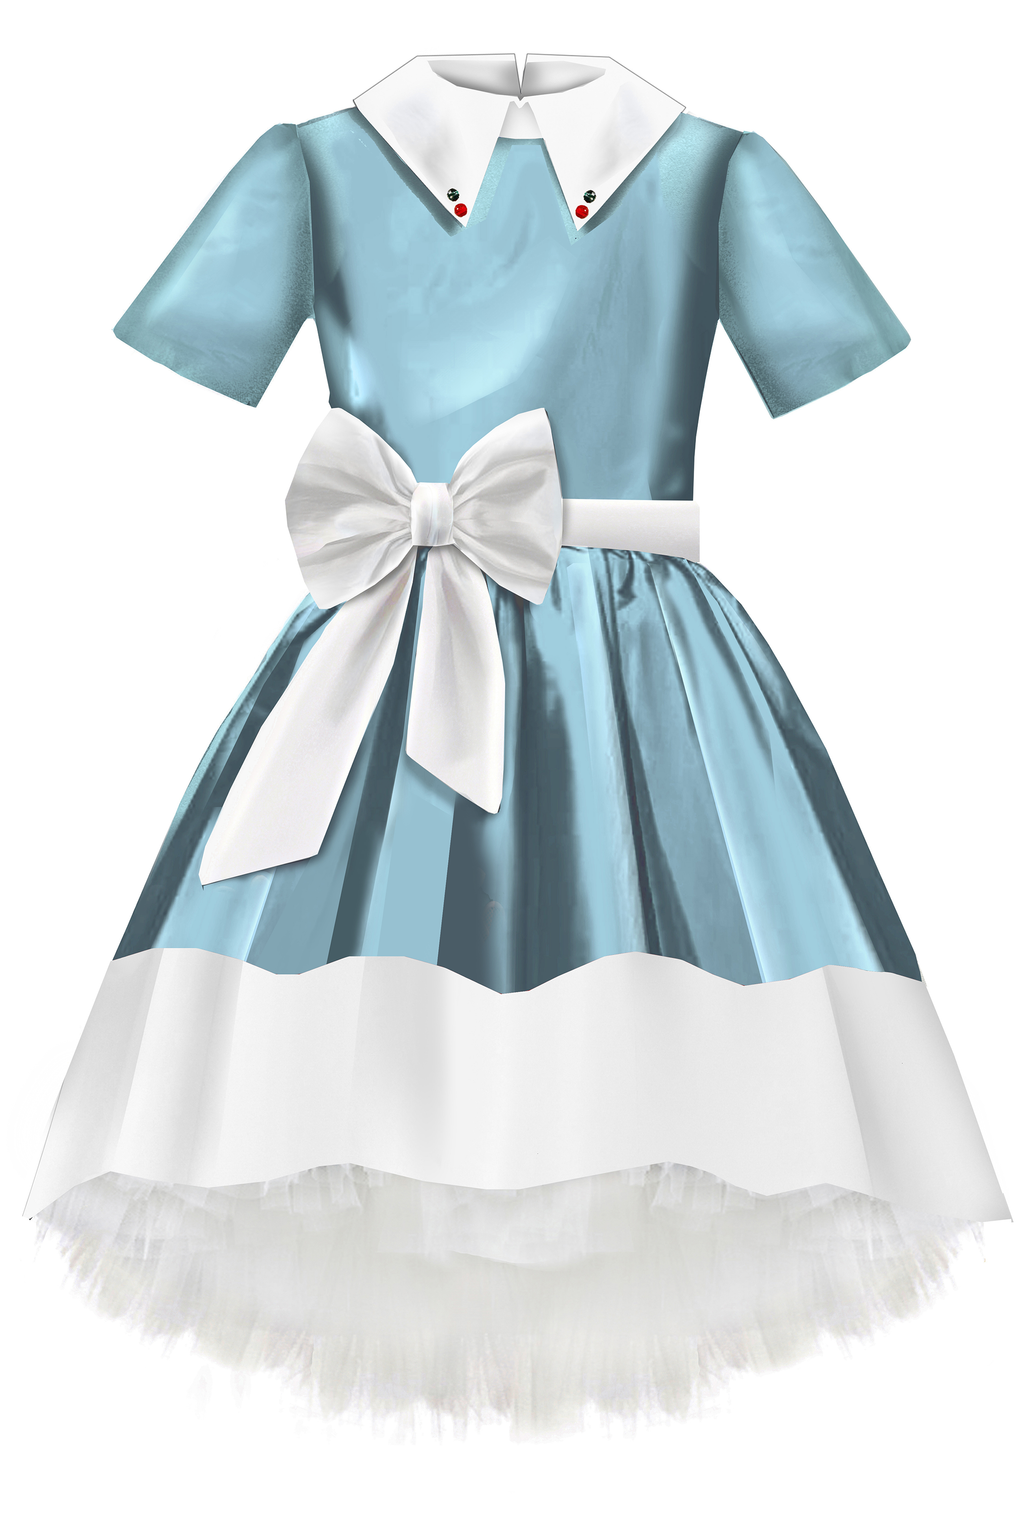 Light Blue Taffeta High-Low Girls Dress with White Collar and Bow